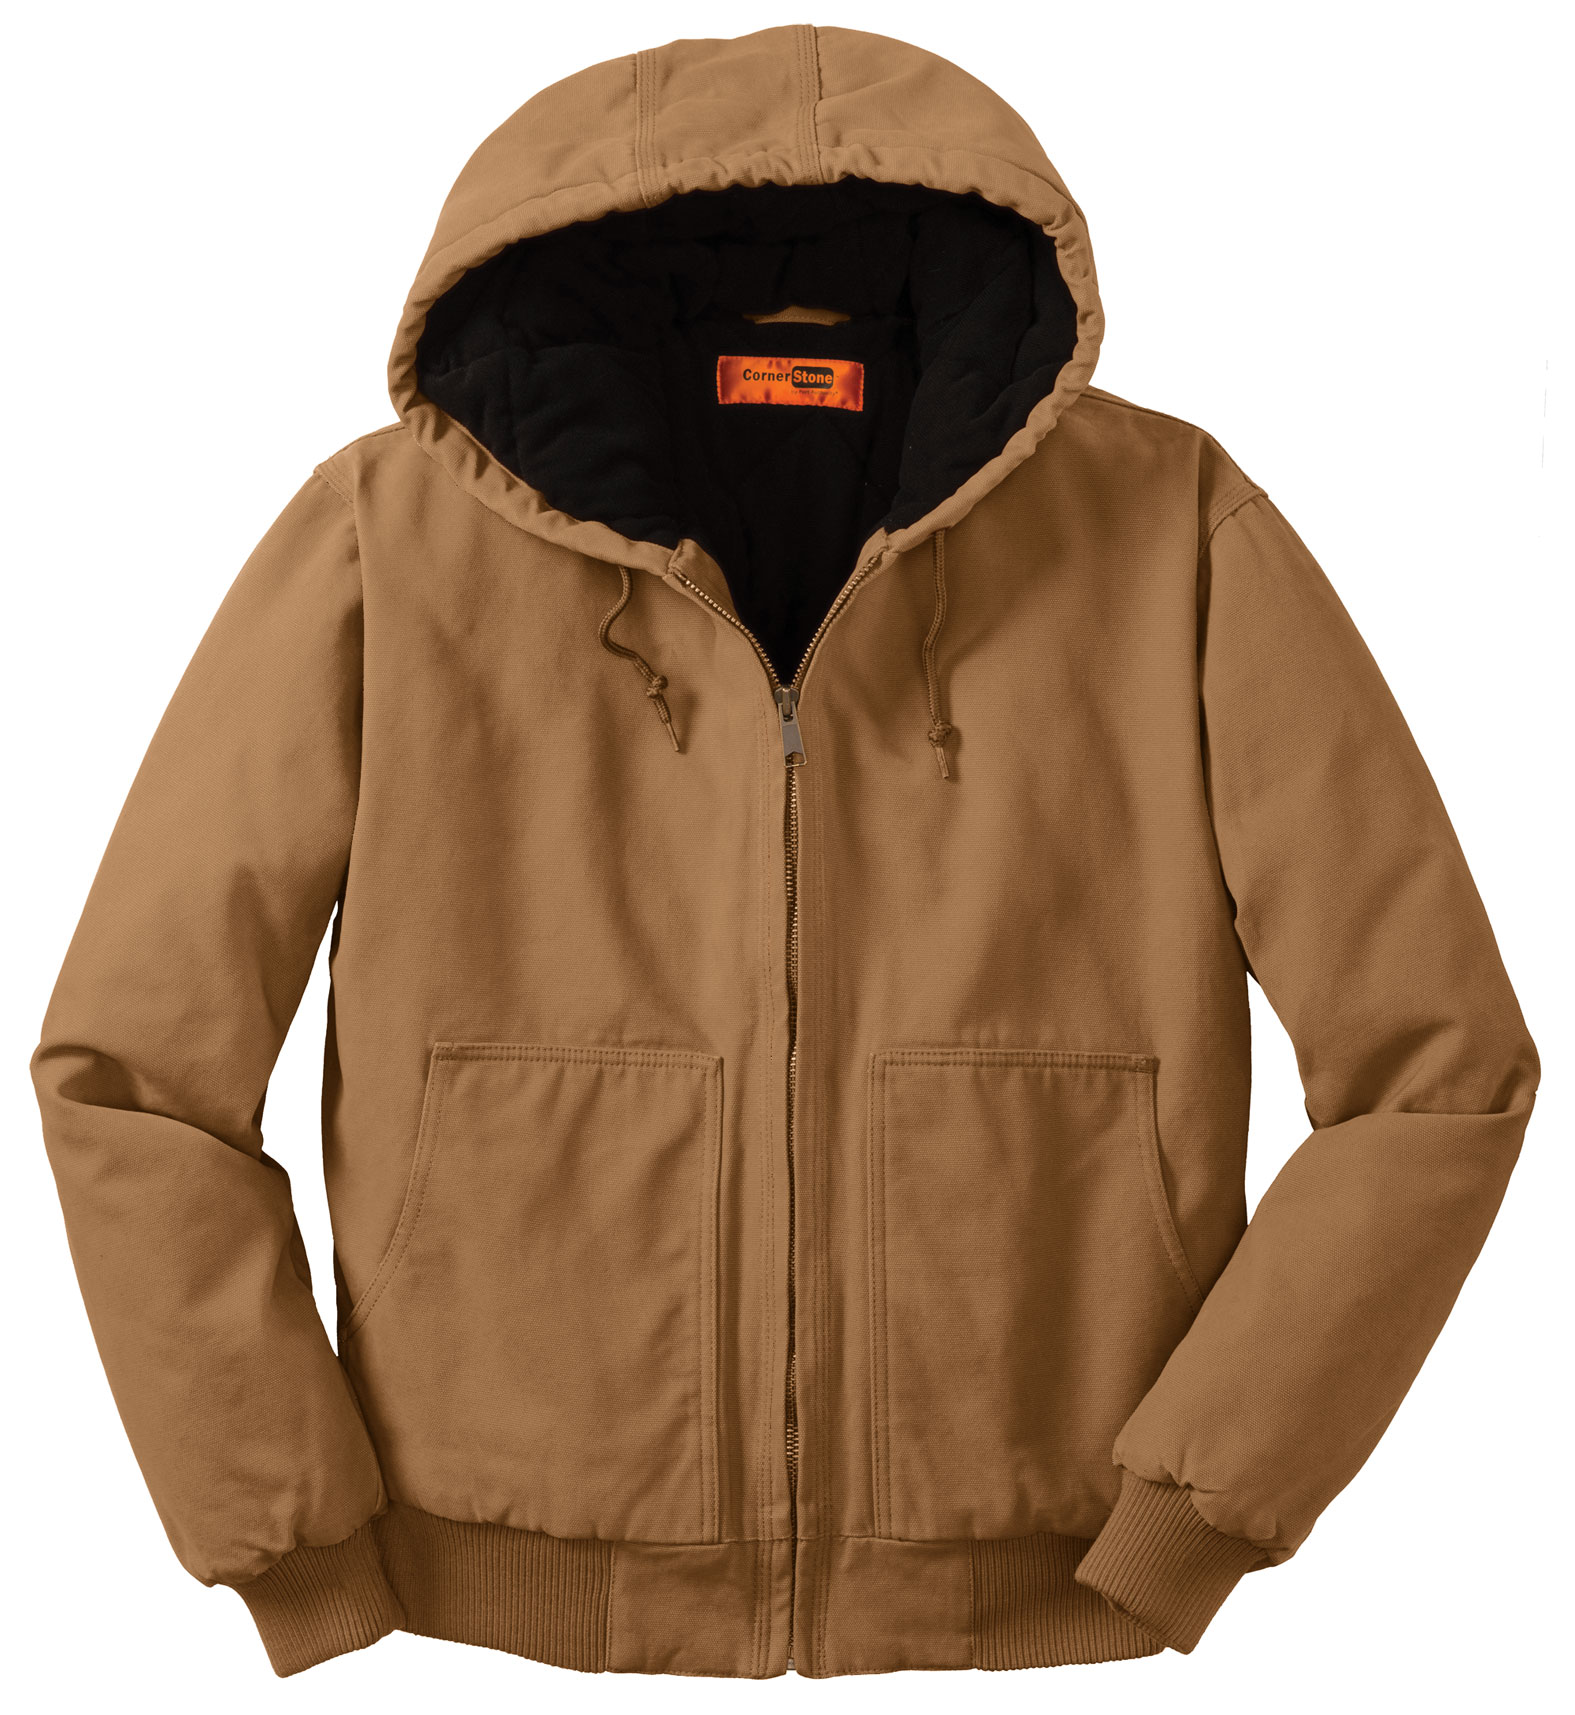 CornerStone® Washed Duck Cloth Hooded Work Jacket